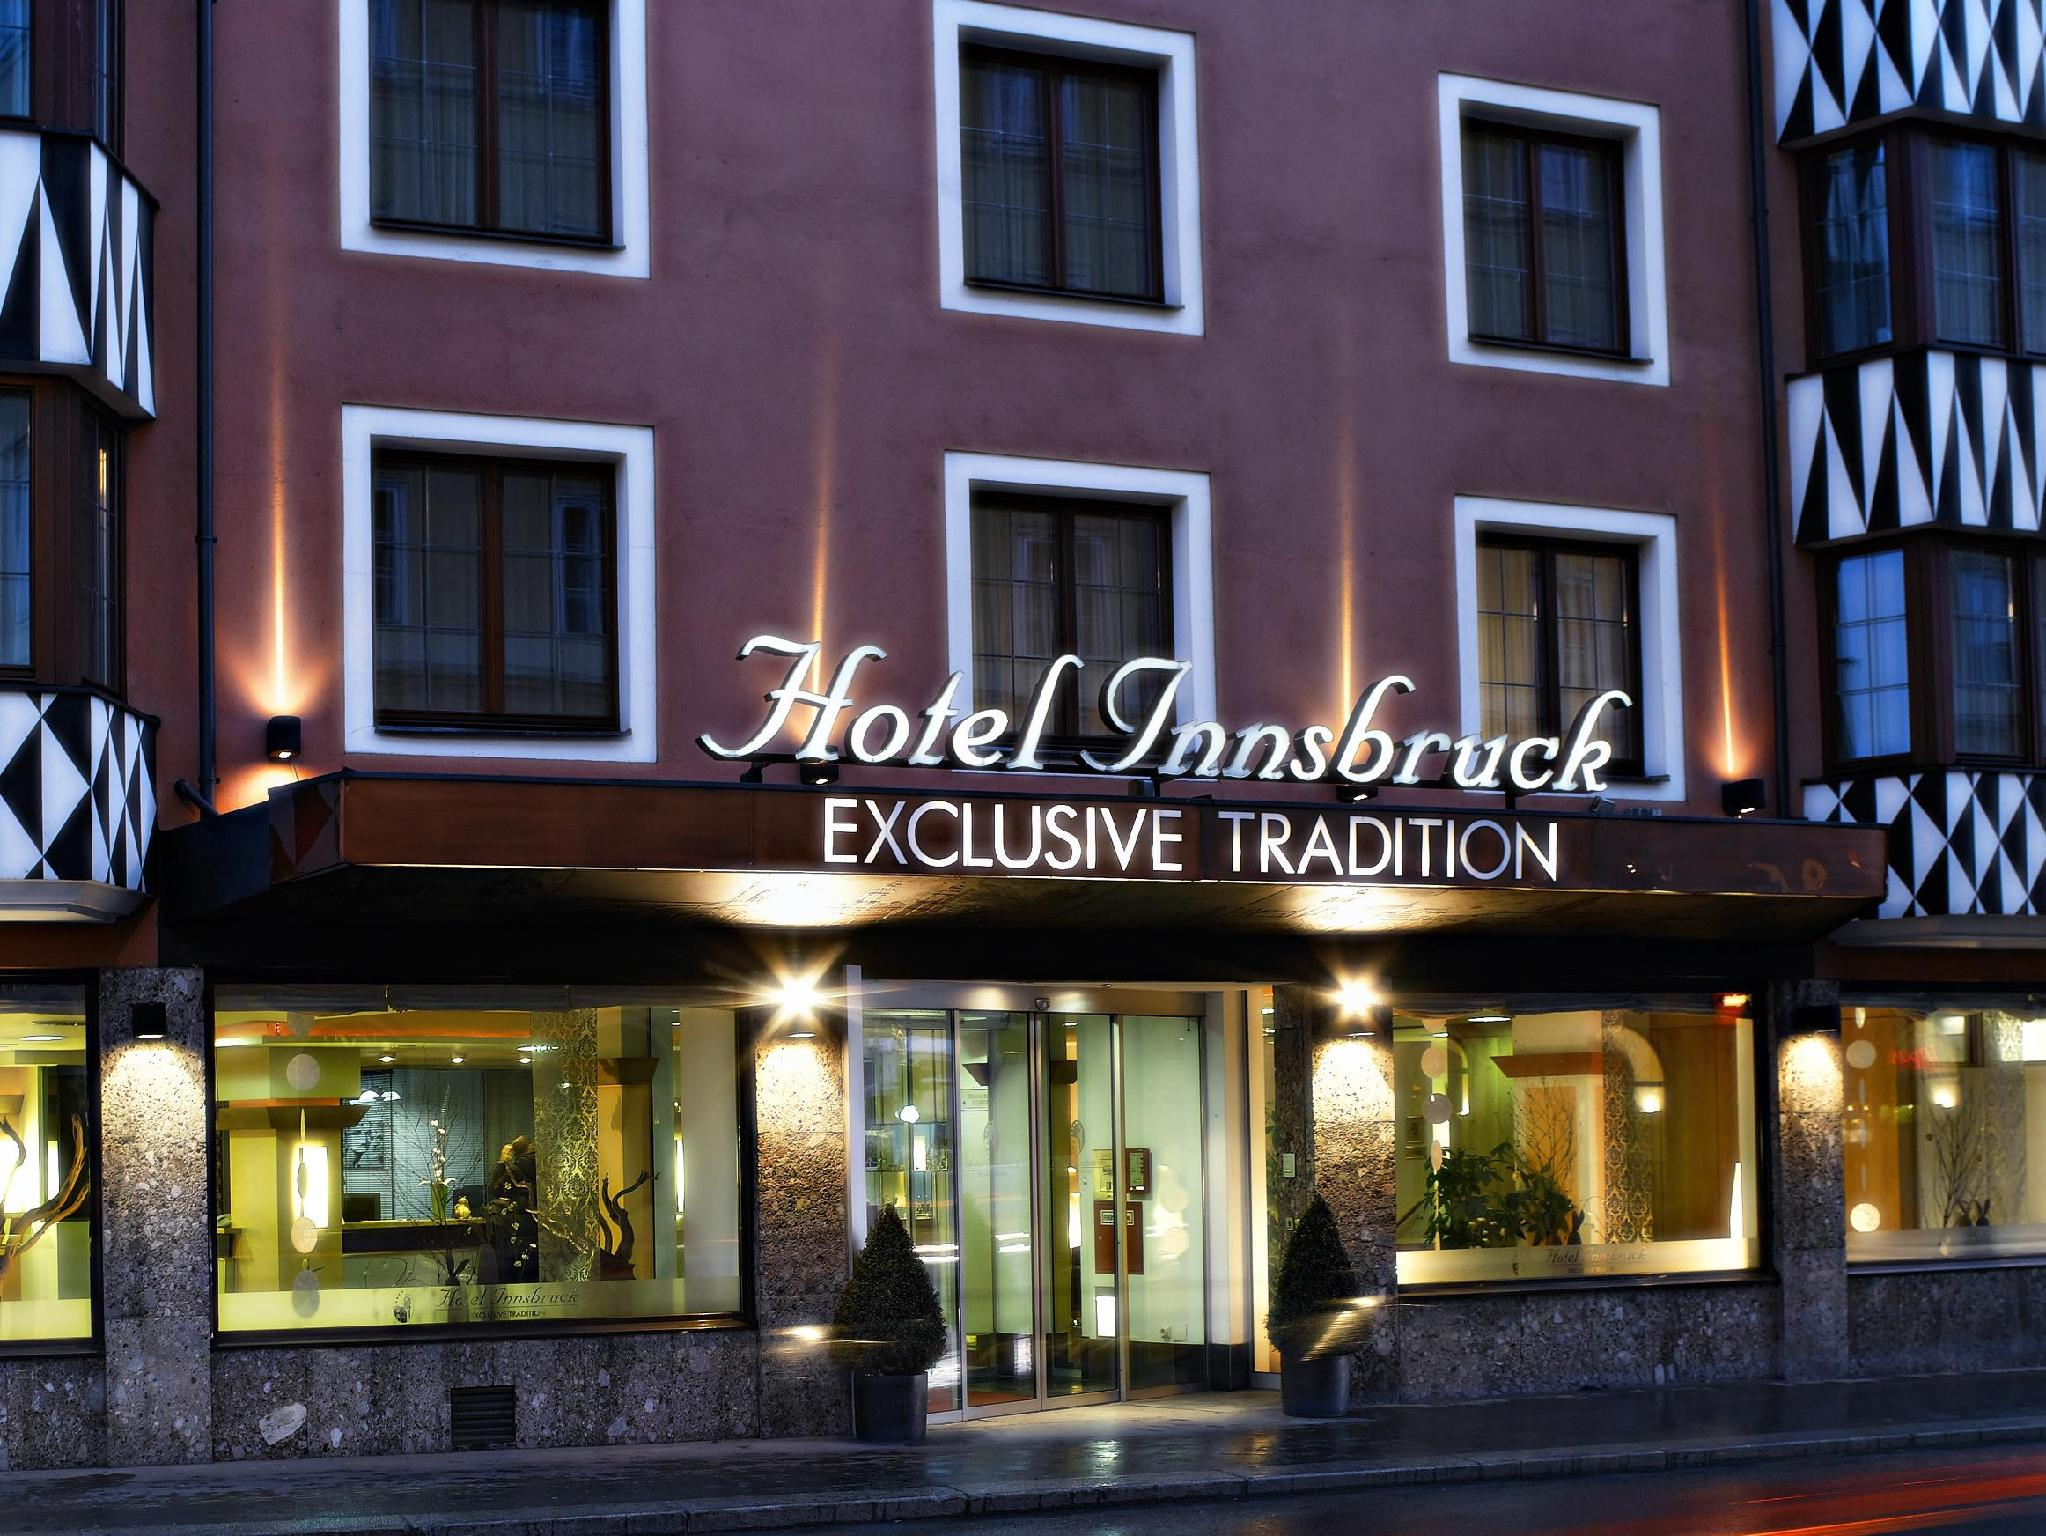 Best Price on Hotel Innsbruck in Innsbruck Reviews